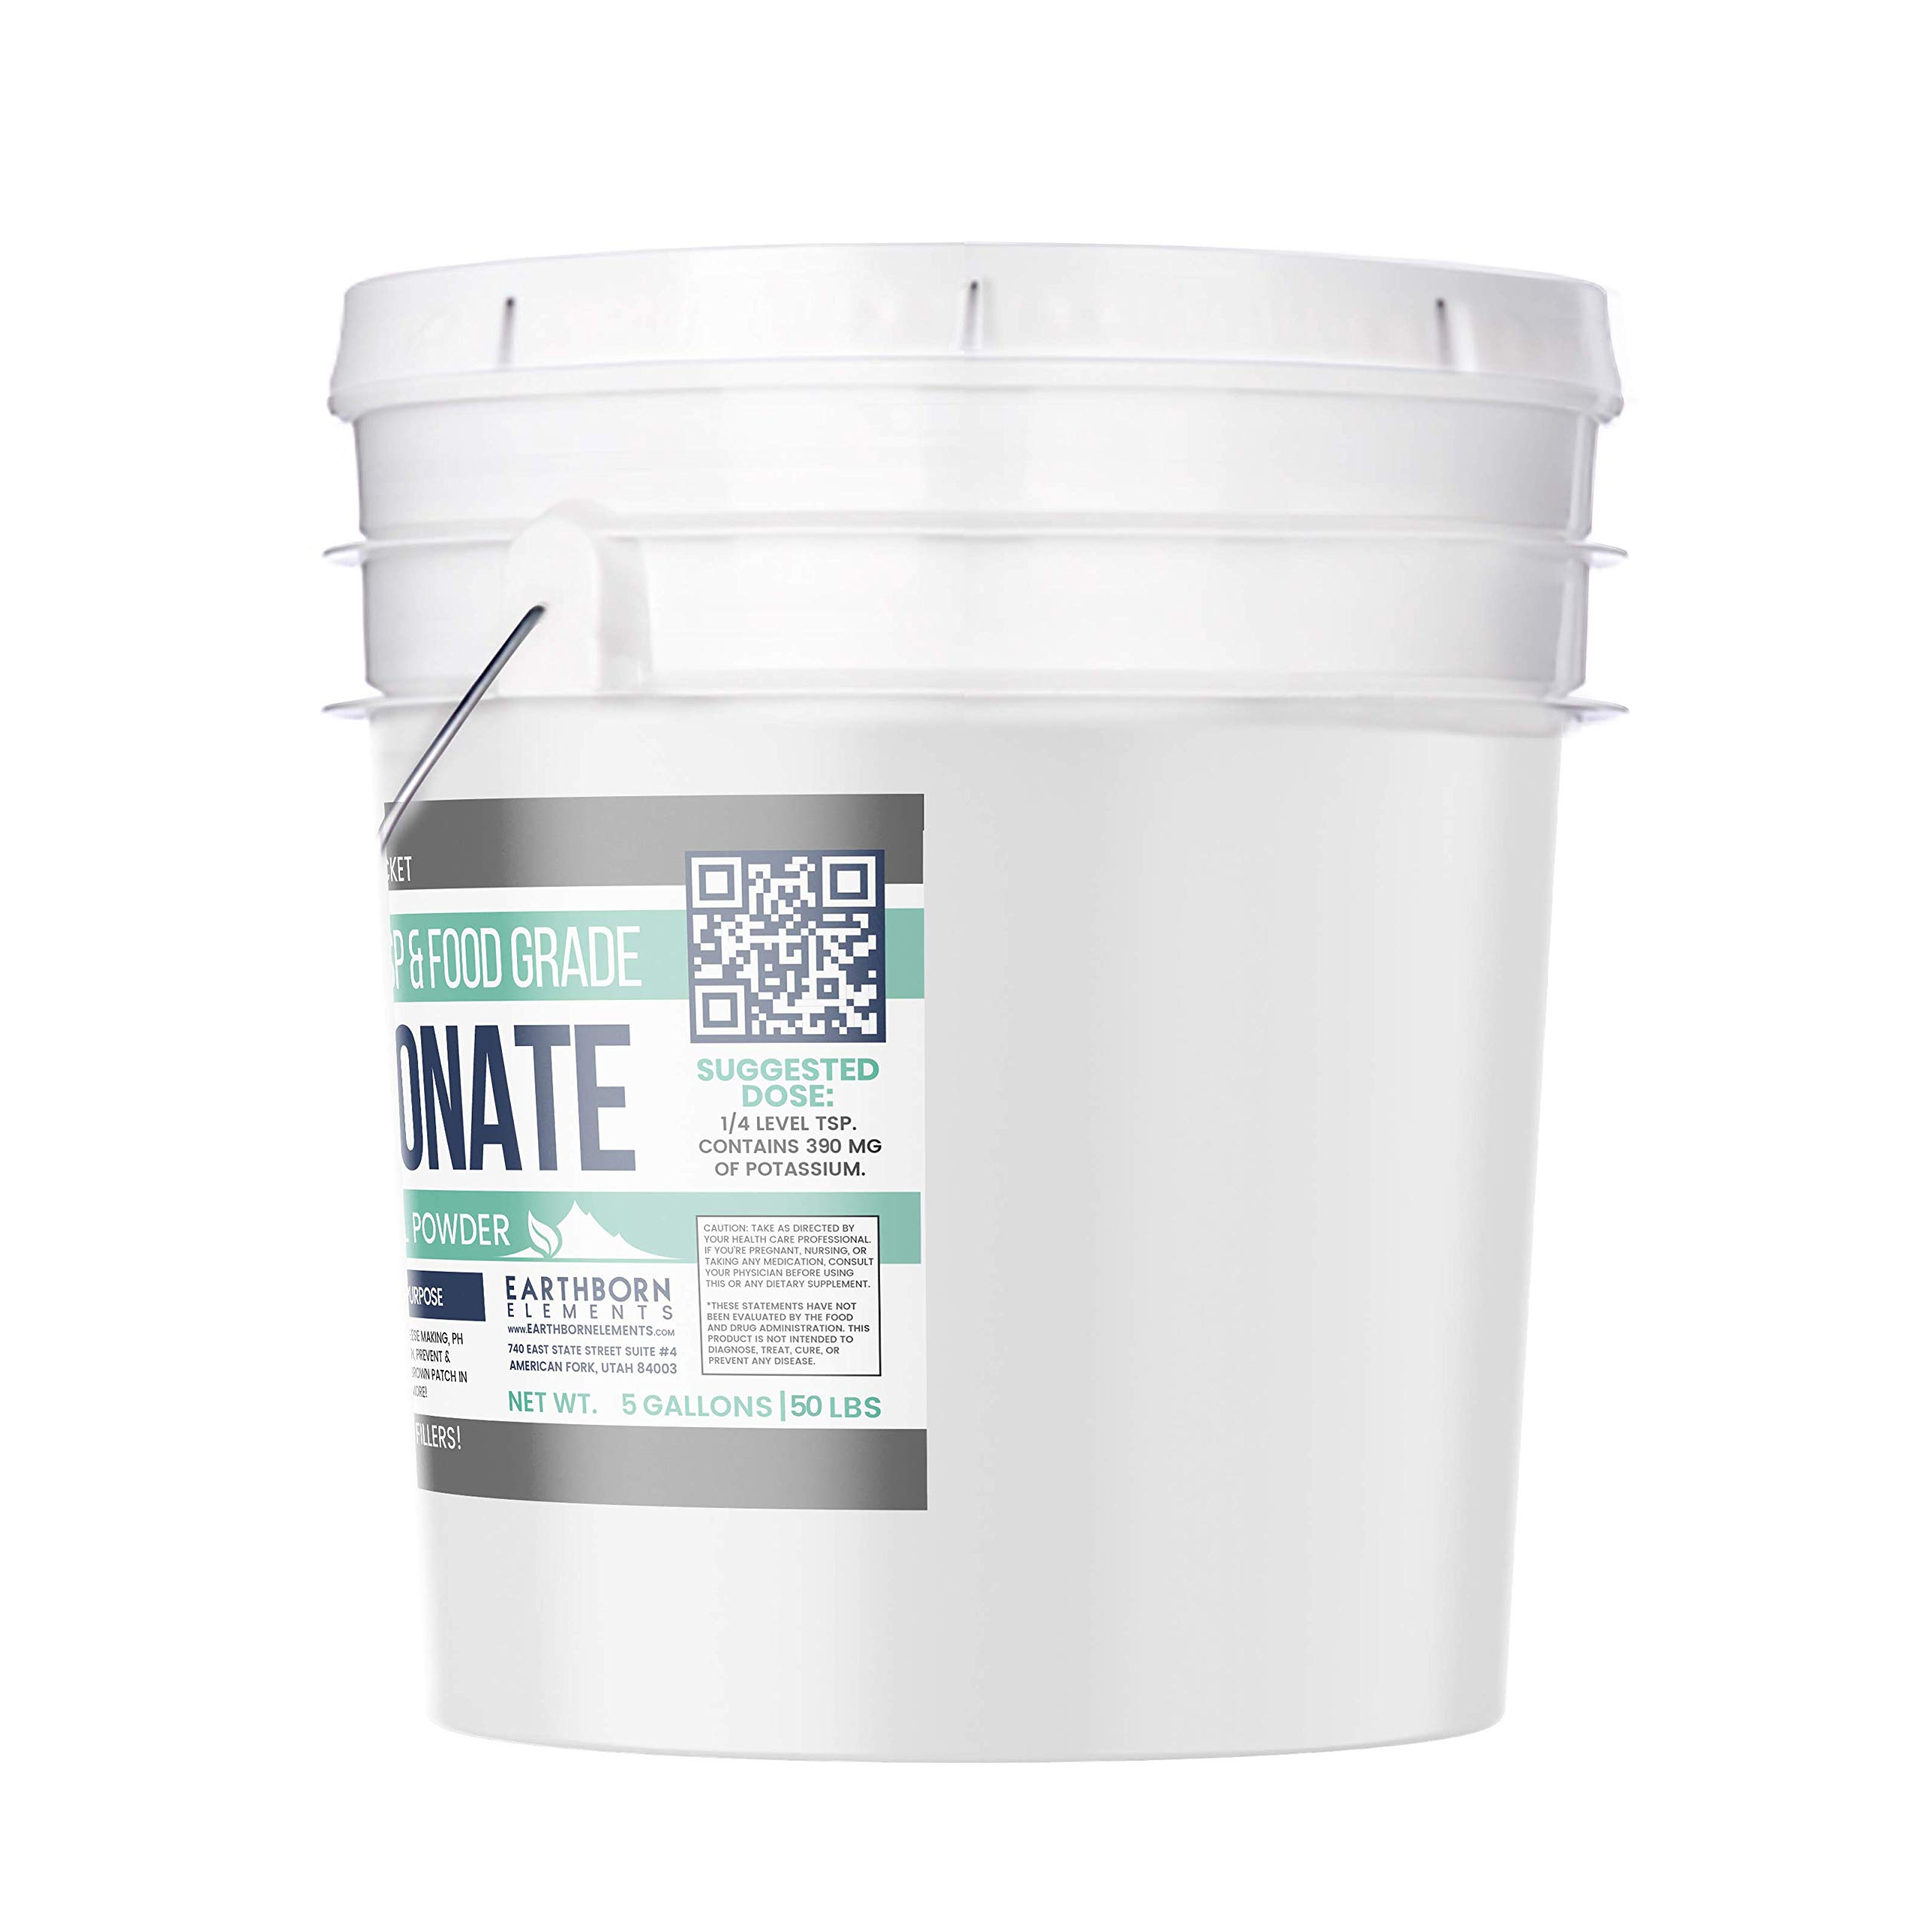 Potassium Bicarbonate (5 Gallon, 50 lbs,) by Earthborn Elements, Highest Purity, Food and USP Pharmaceutical Grade by Earthborn Elements (Image #2)